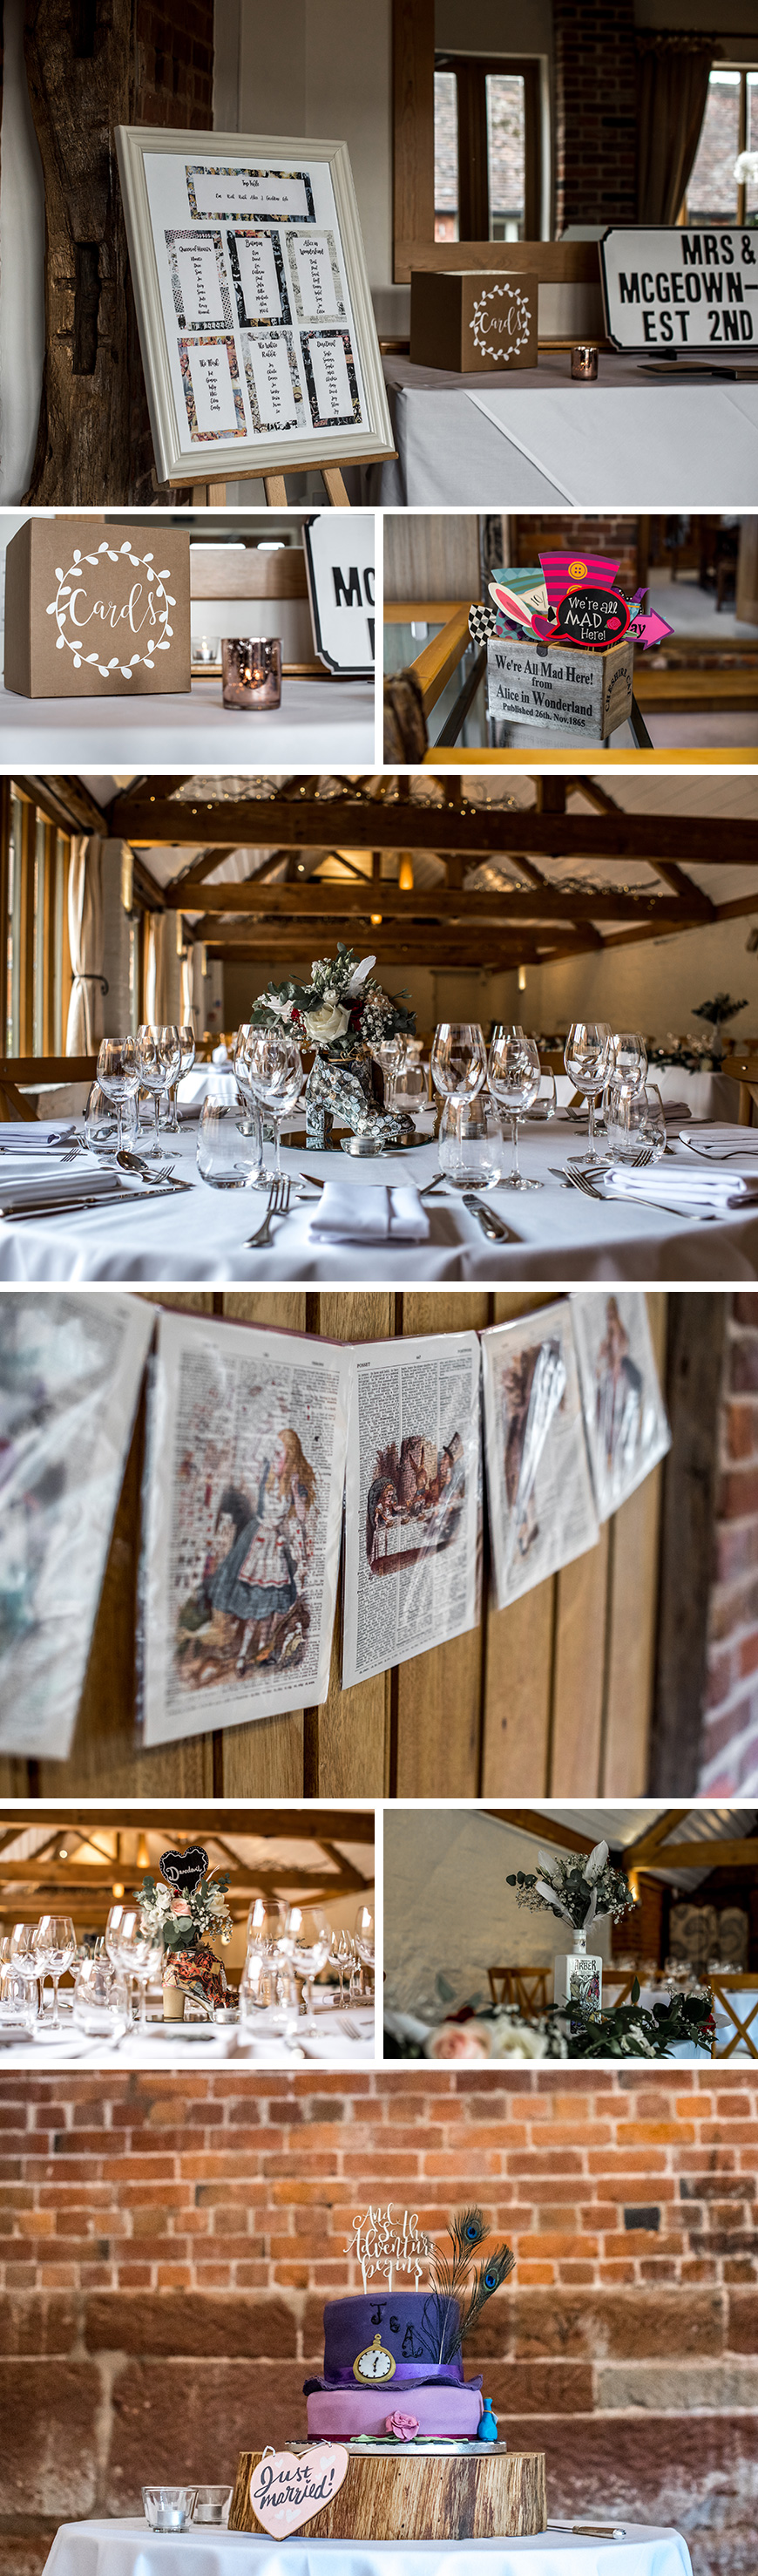 Real Wedding - Alice and J's Handmade Autumn Wedding At Curradine Barns | CHWV